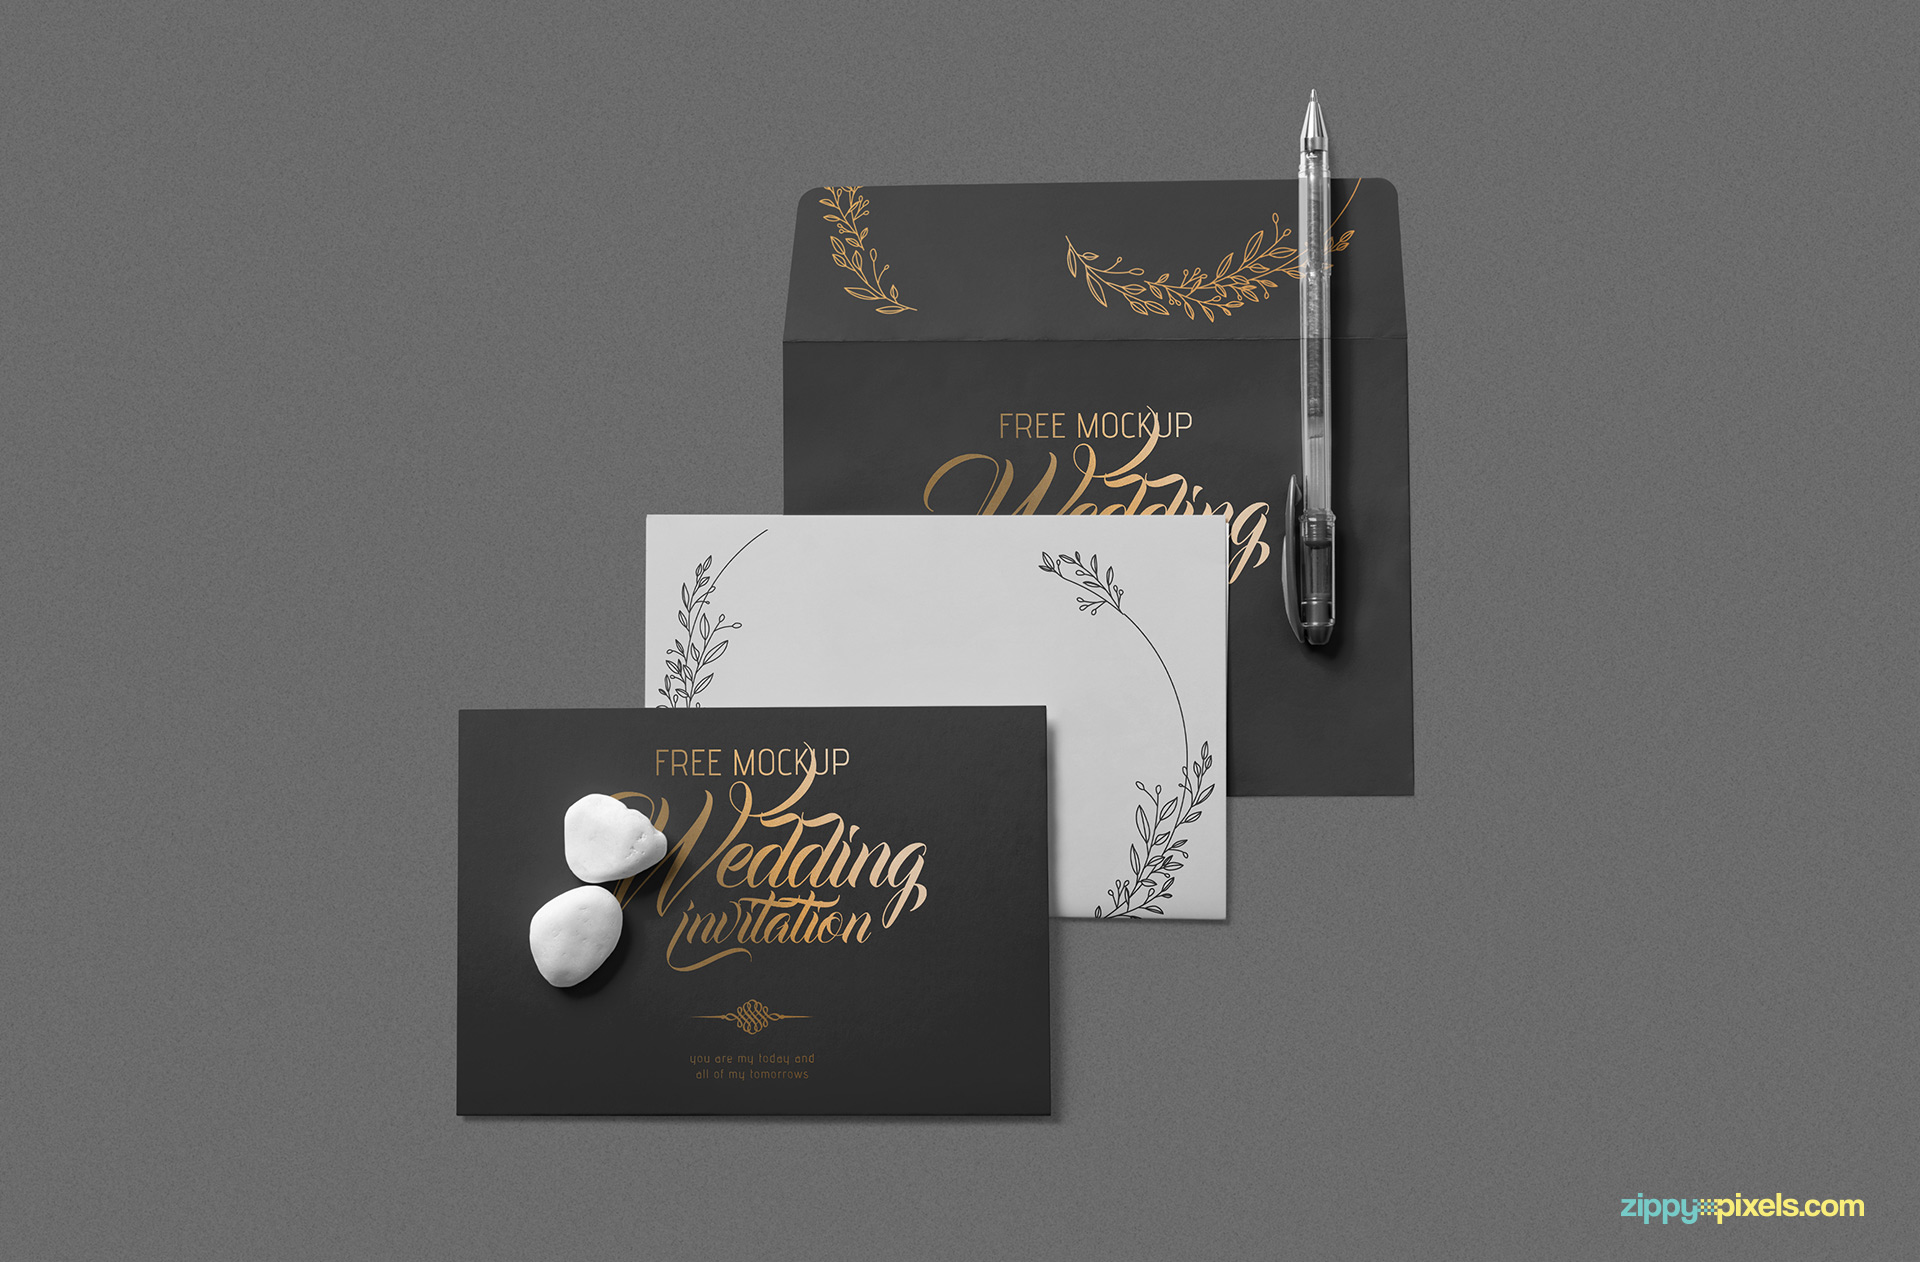 Free elegant wedding invitation mockup.